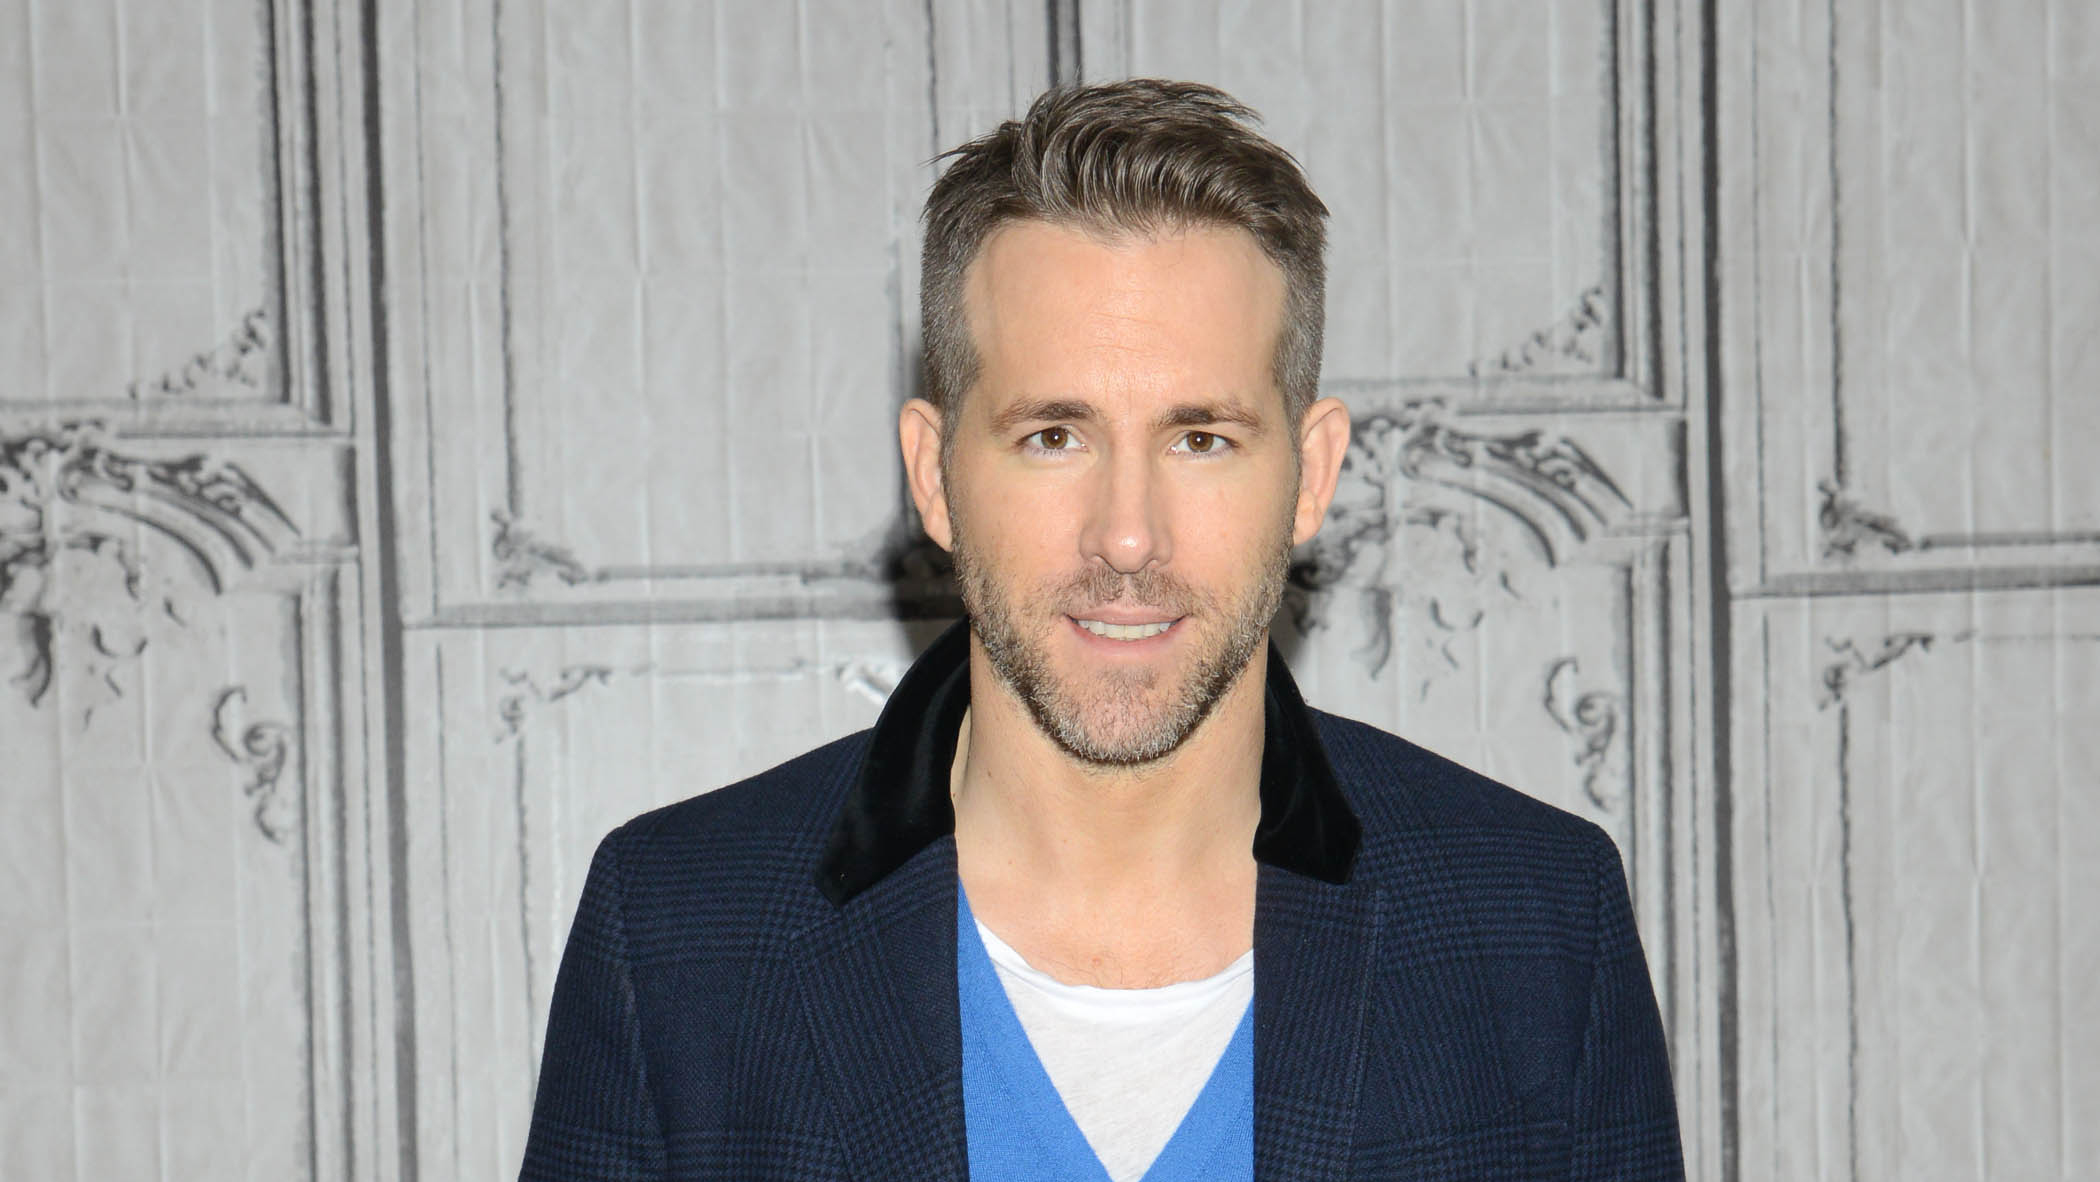 Ryan Reynolds Twitter All The Times He Was Hilarious